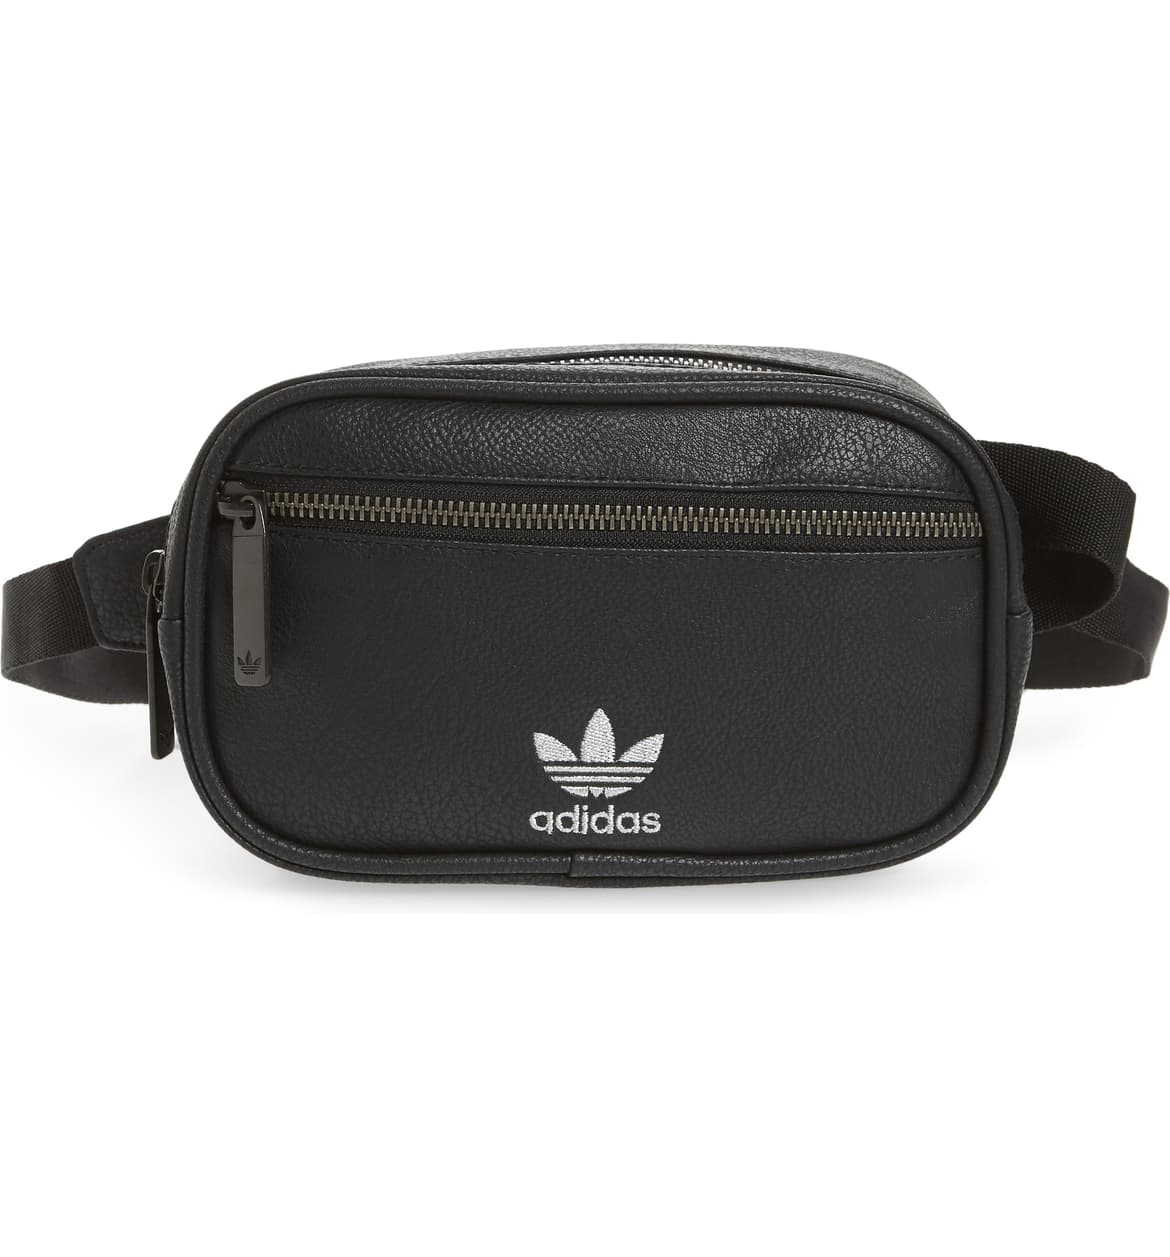 There was a time between the 1980's and today when the fanny pack fell into a category that can only be described as 'embarrassing'.{ } But now the fanny pack has made a stylish return.{ } Some call it a belt bag...but we all know what it really is.{ } { }Rock the tend wit the $35 pack. (Image: Nordstrom){ }